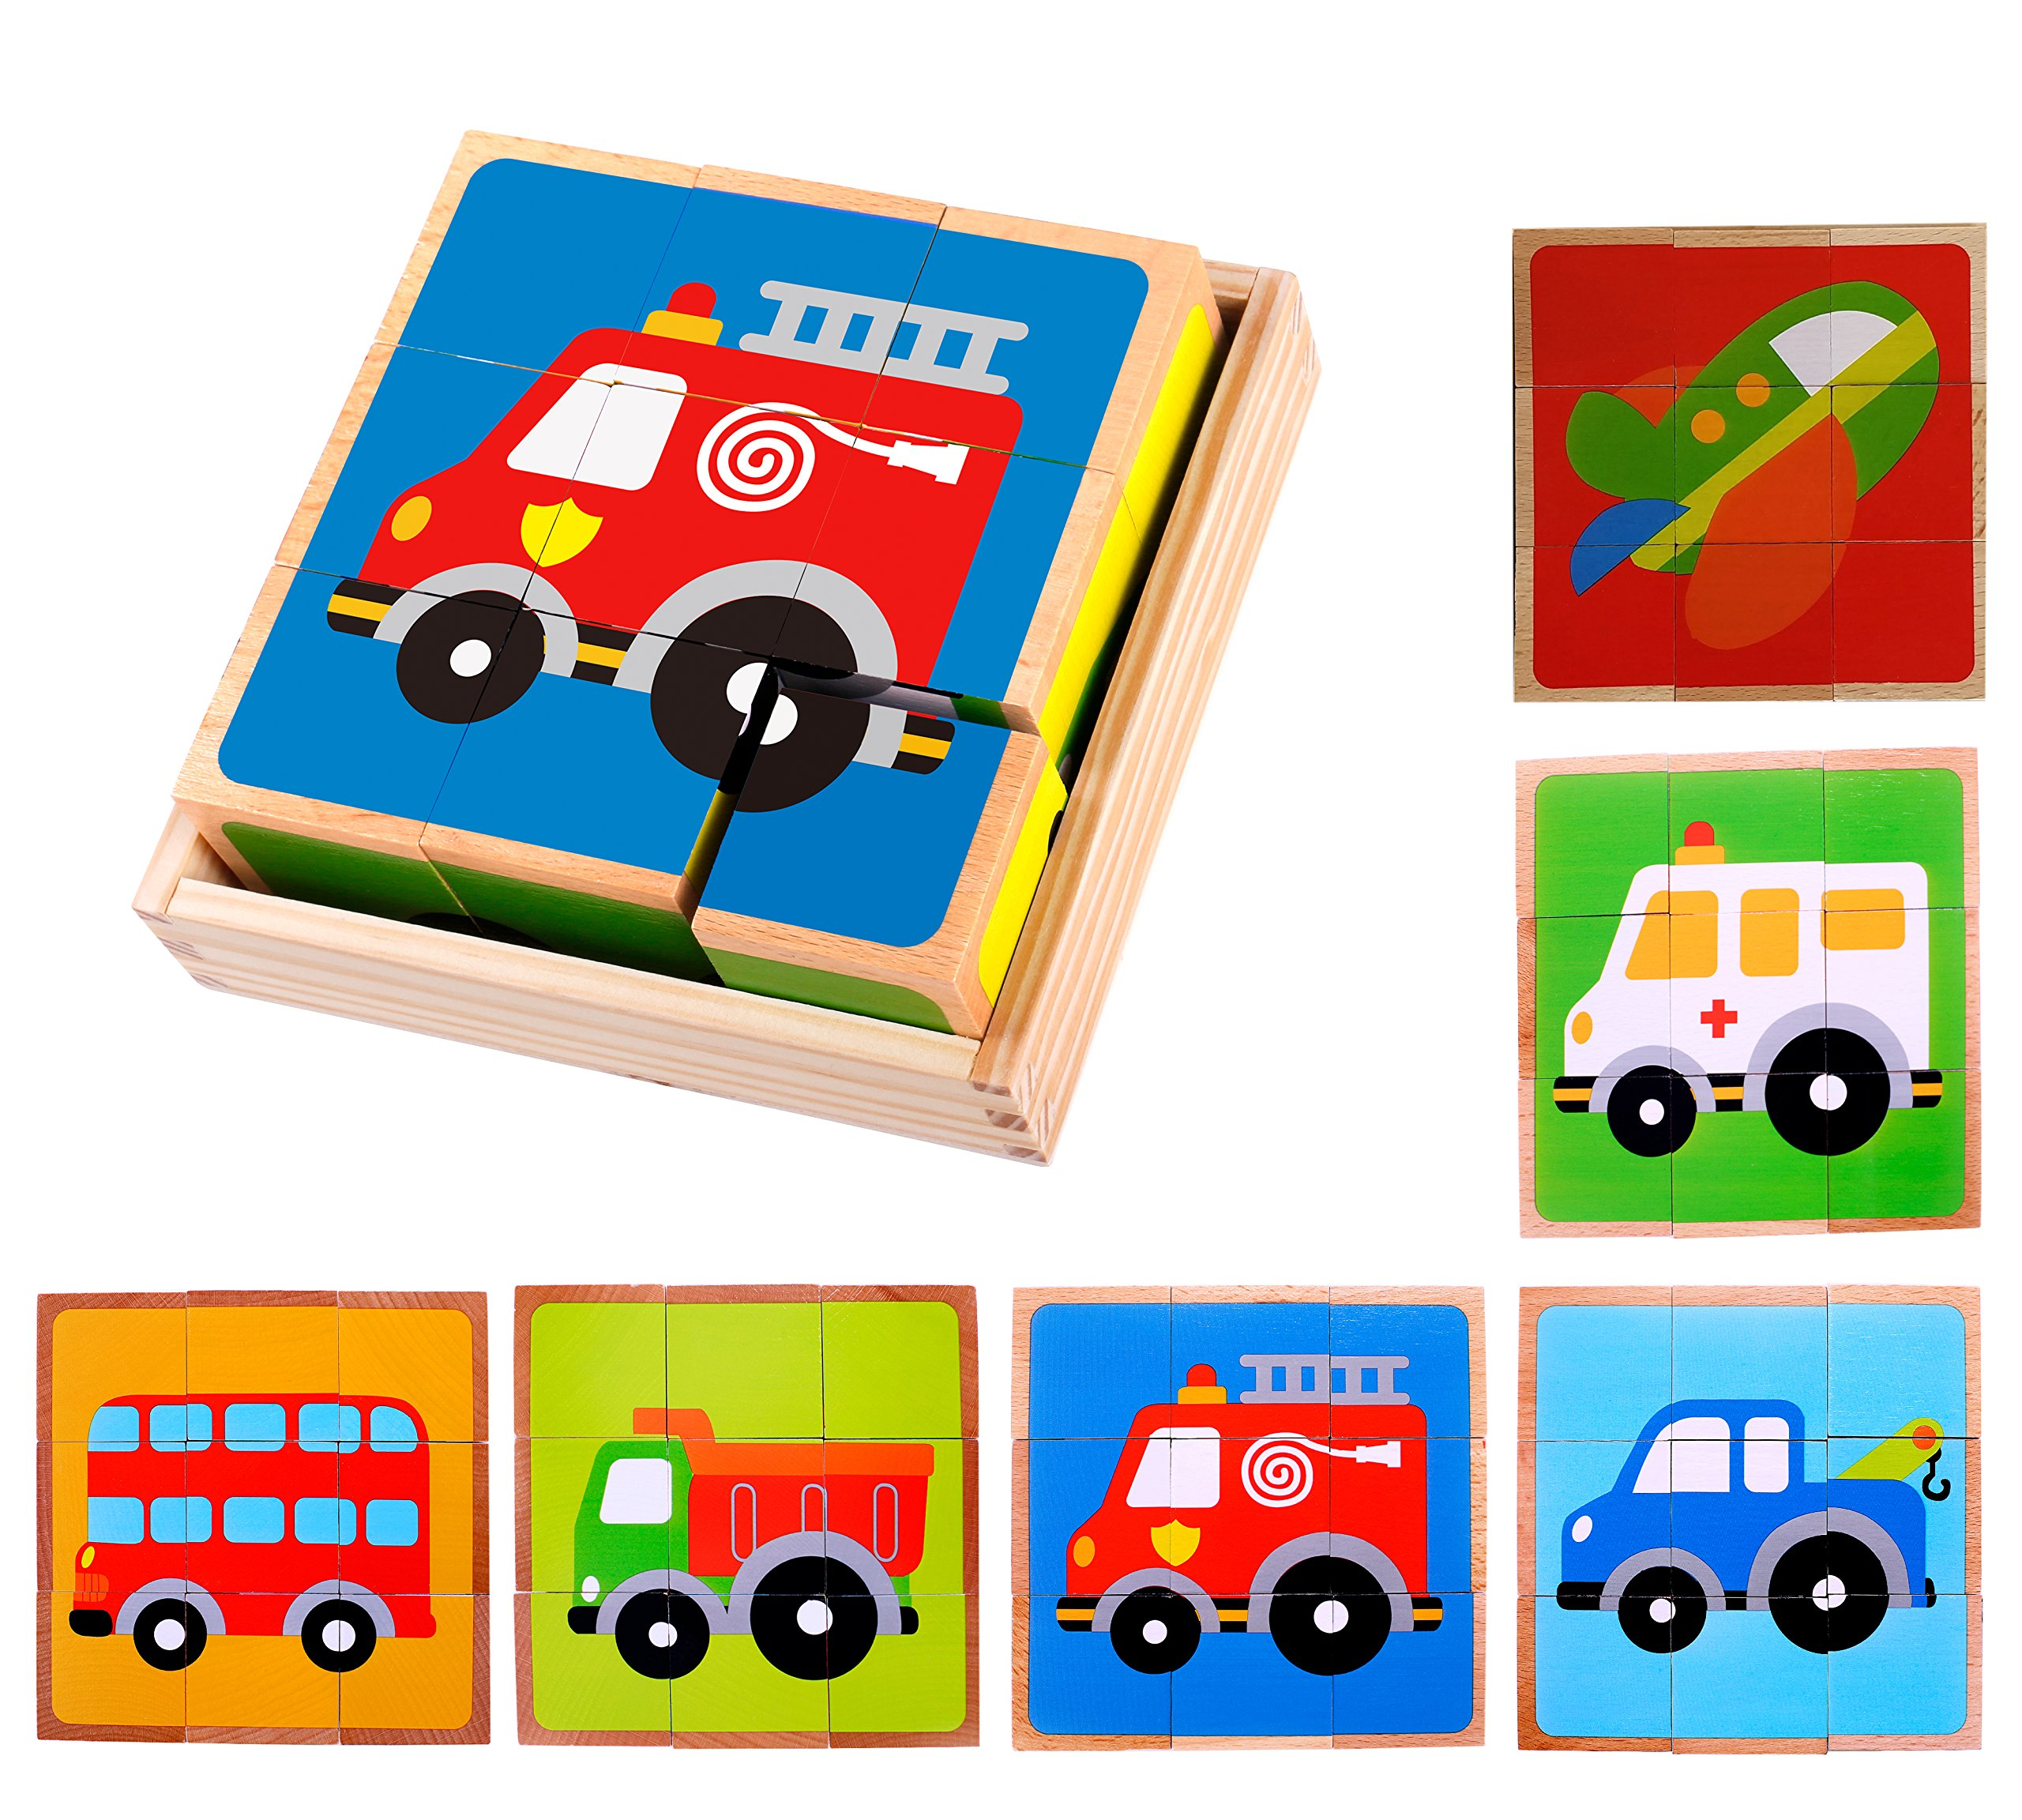 Premium Wooden Vehicle Block Puzzle (6 in 1) with Storage Tray for Toddlers Age 3 and up, Preschool Kids w/ Colorful Solid Wood Cube Pieces - Fire Truck, Airplane, Dump Truck, Ambulance, Bus